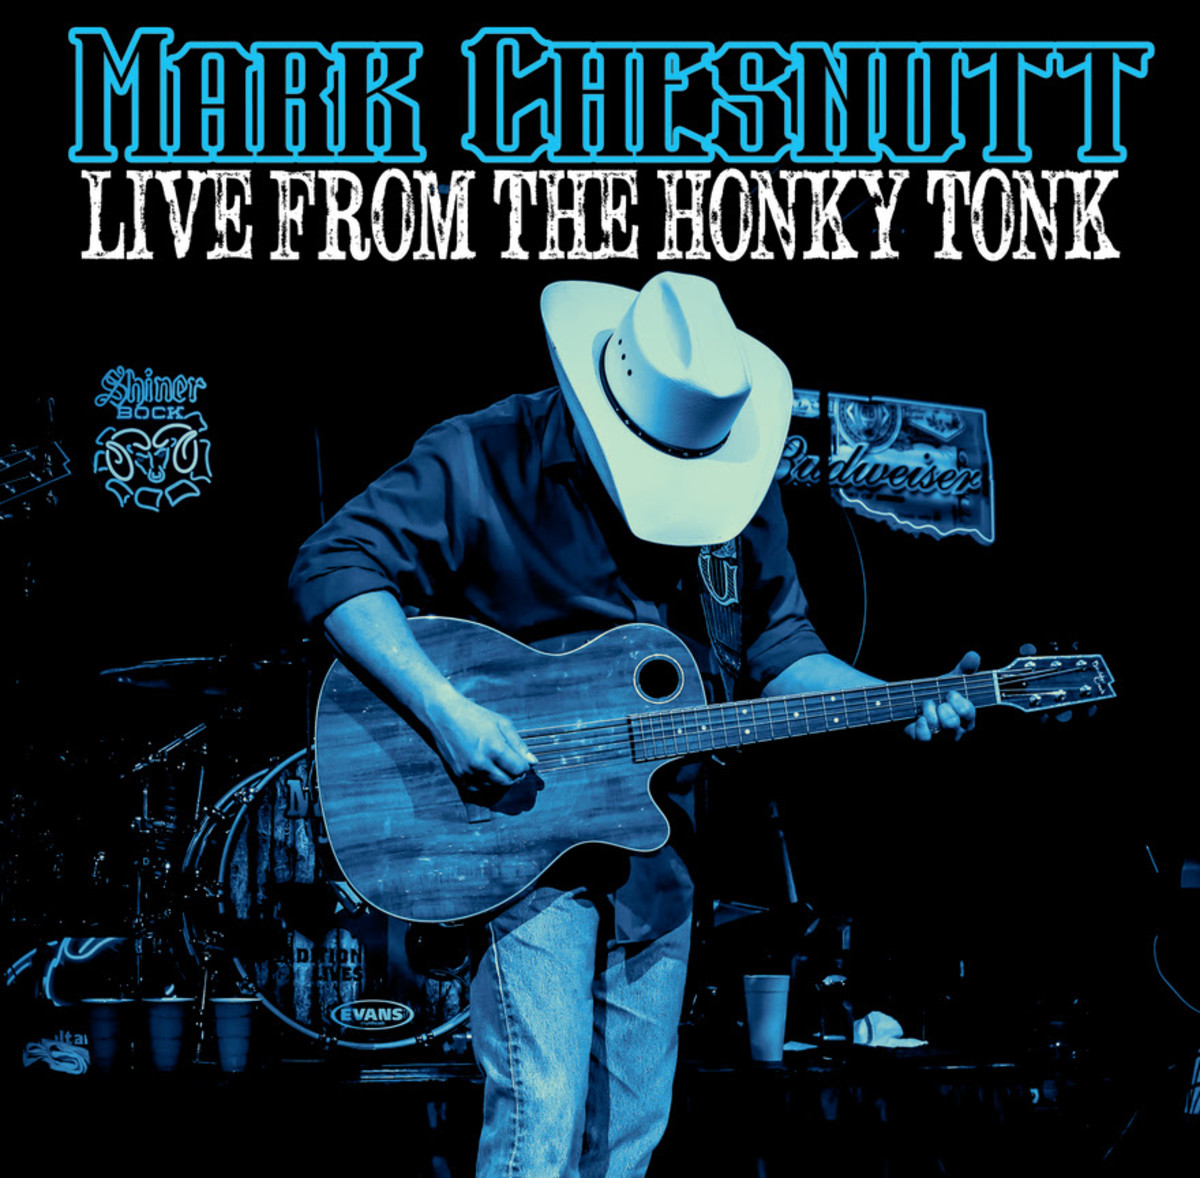 mark-chesnutt-releases-new-album-and-discusses-his-career-past-and-present